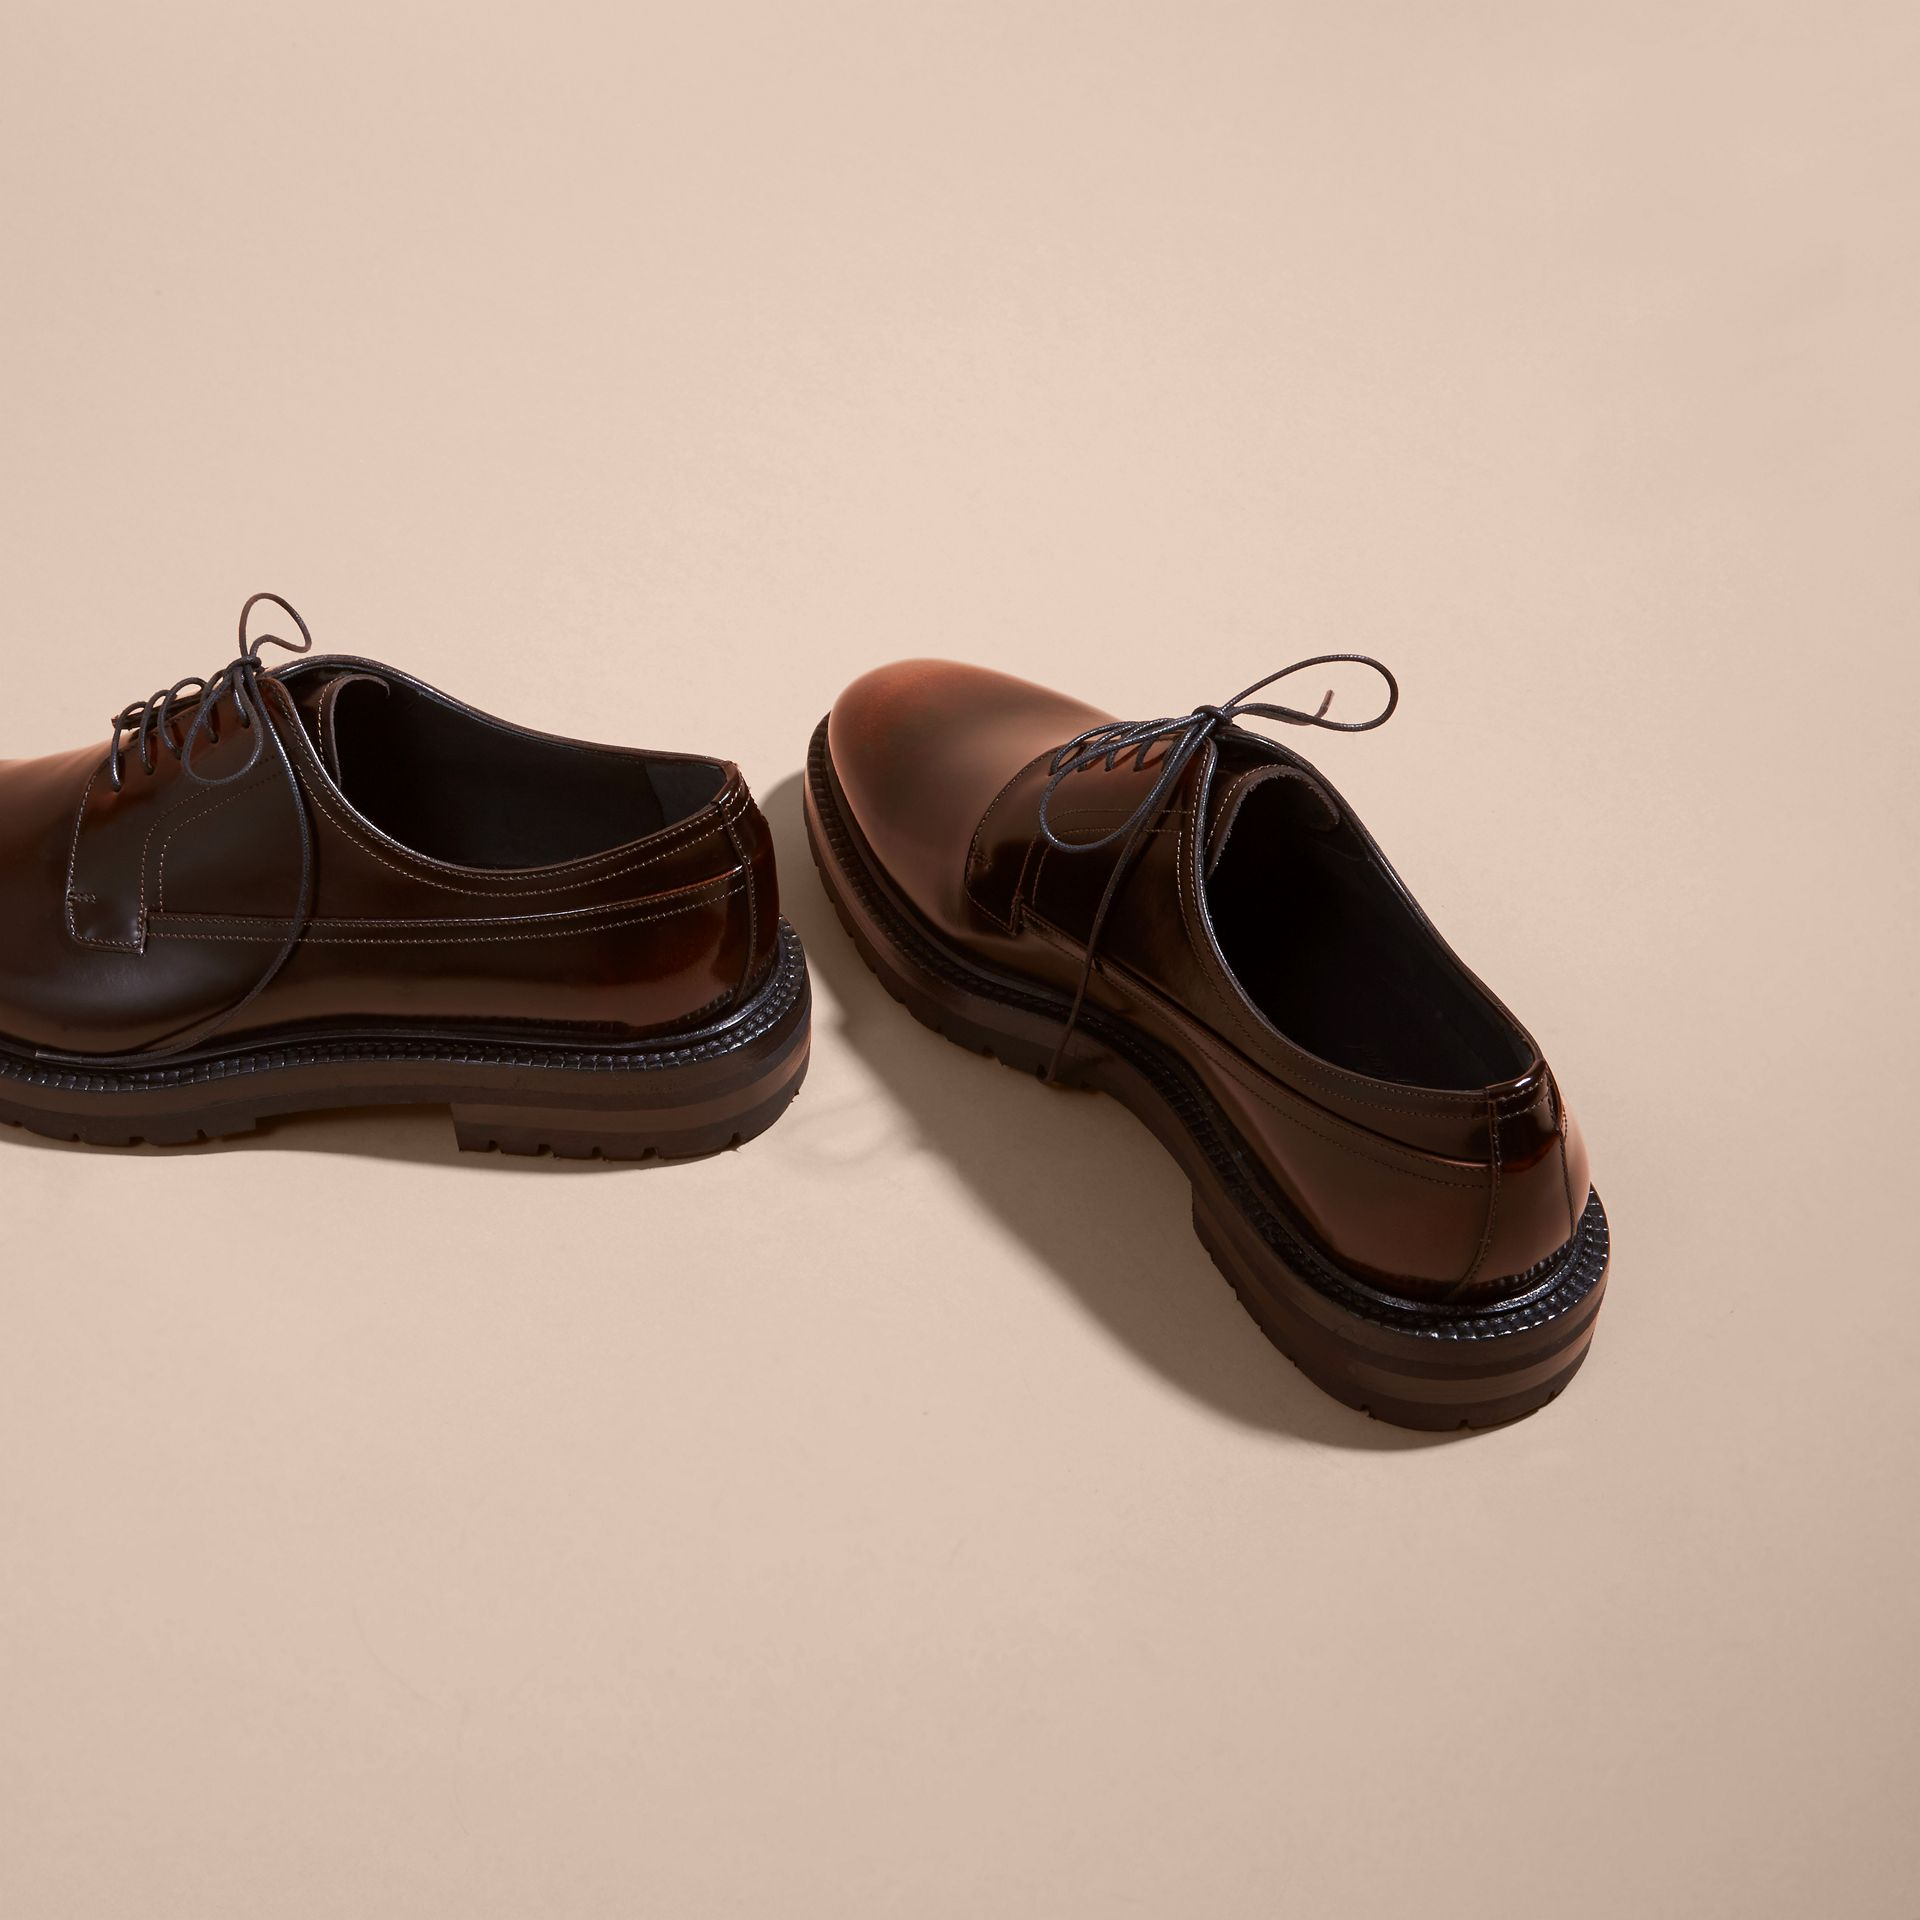 Chaussures de style derby en cuir bruni (Chocolat Amer) - Homme | Burberry - photo de la galerie 4